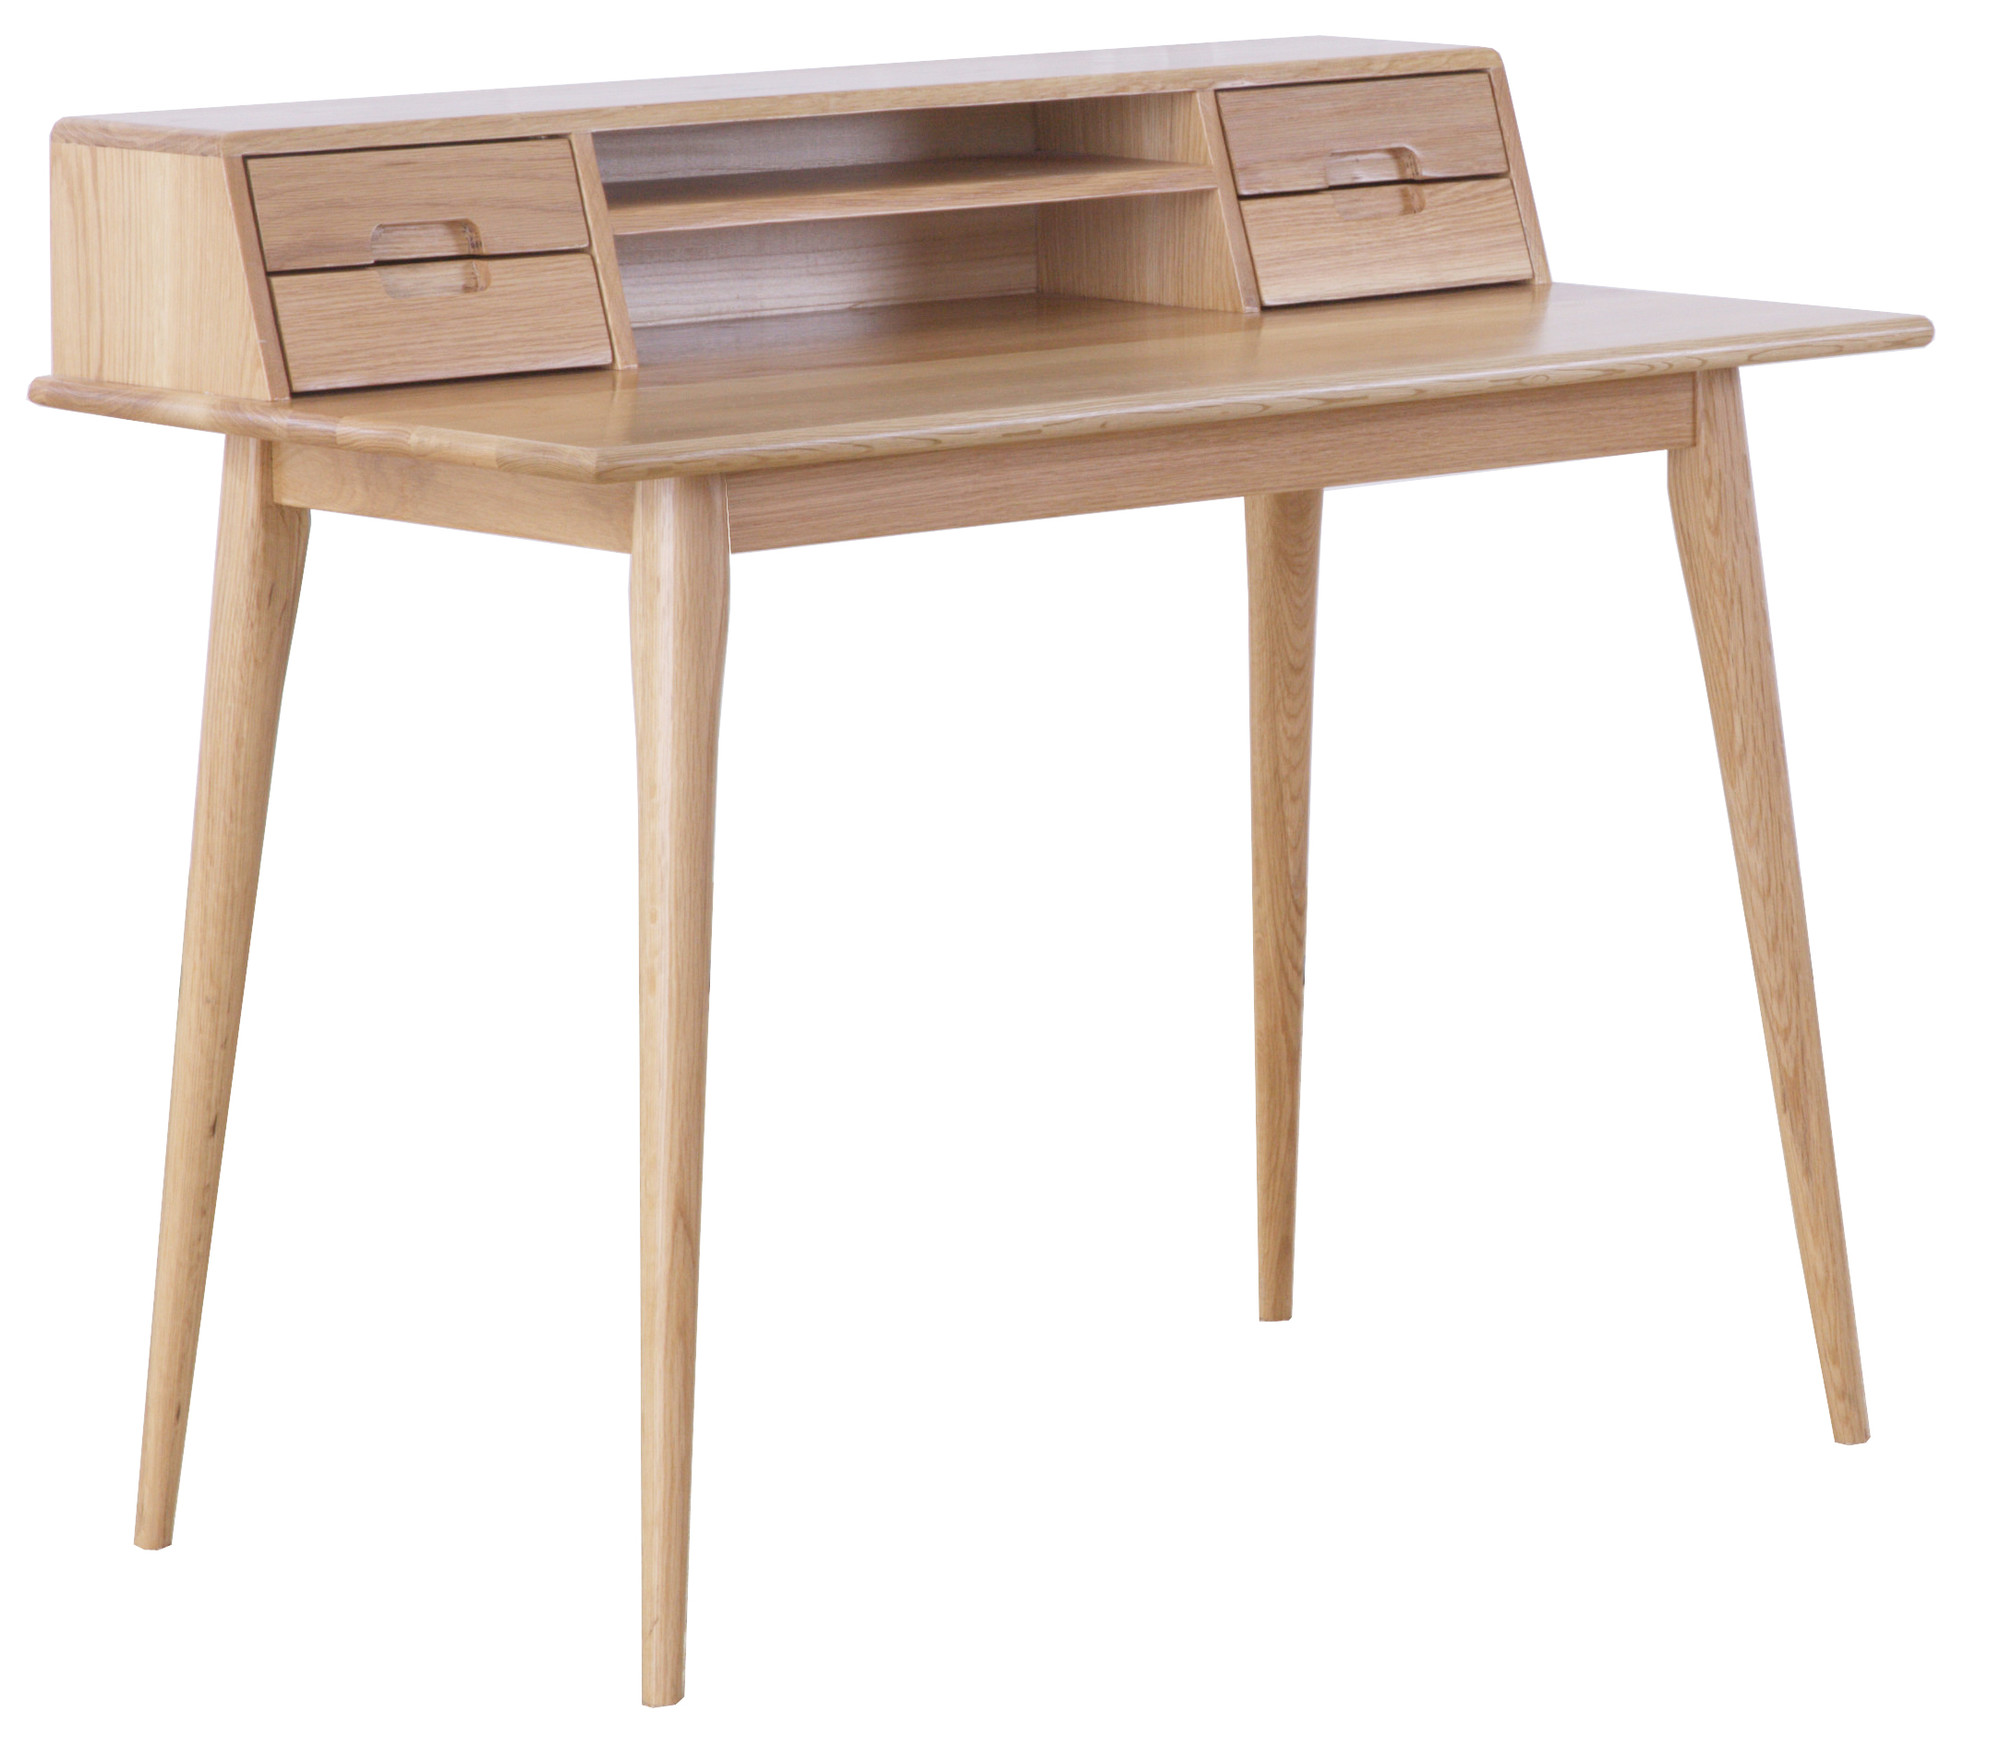 Temple Webster Oscar Oak Scandinavian Style Desk Reviews